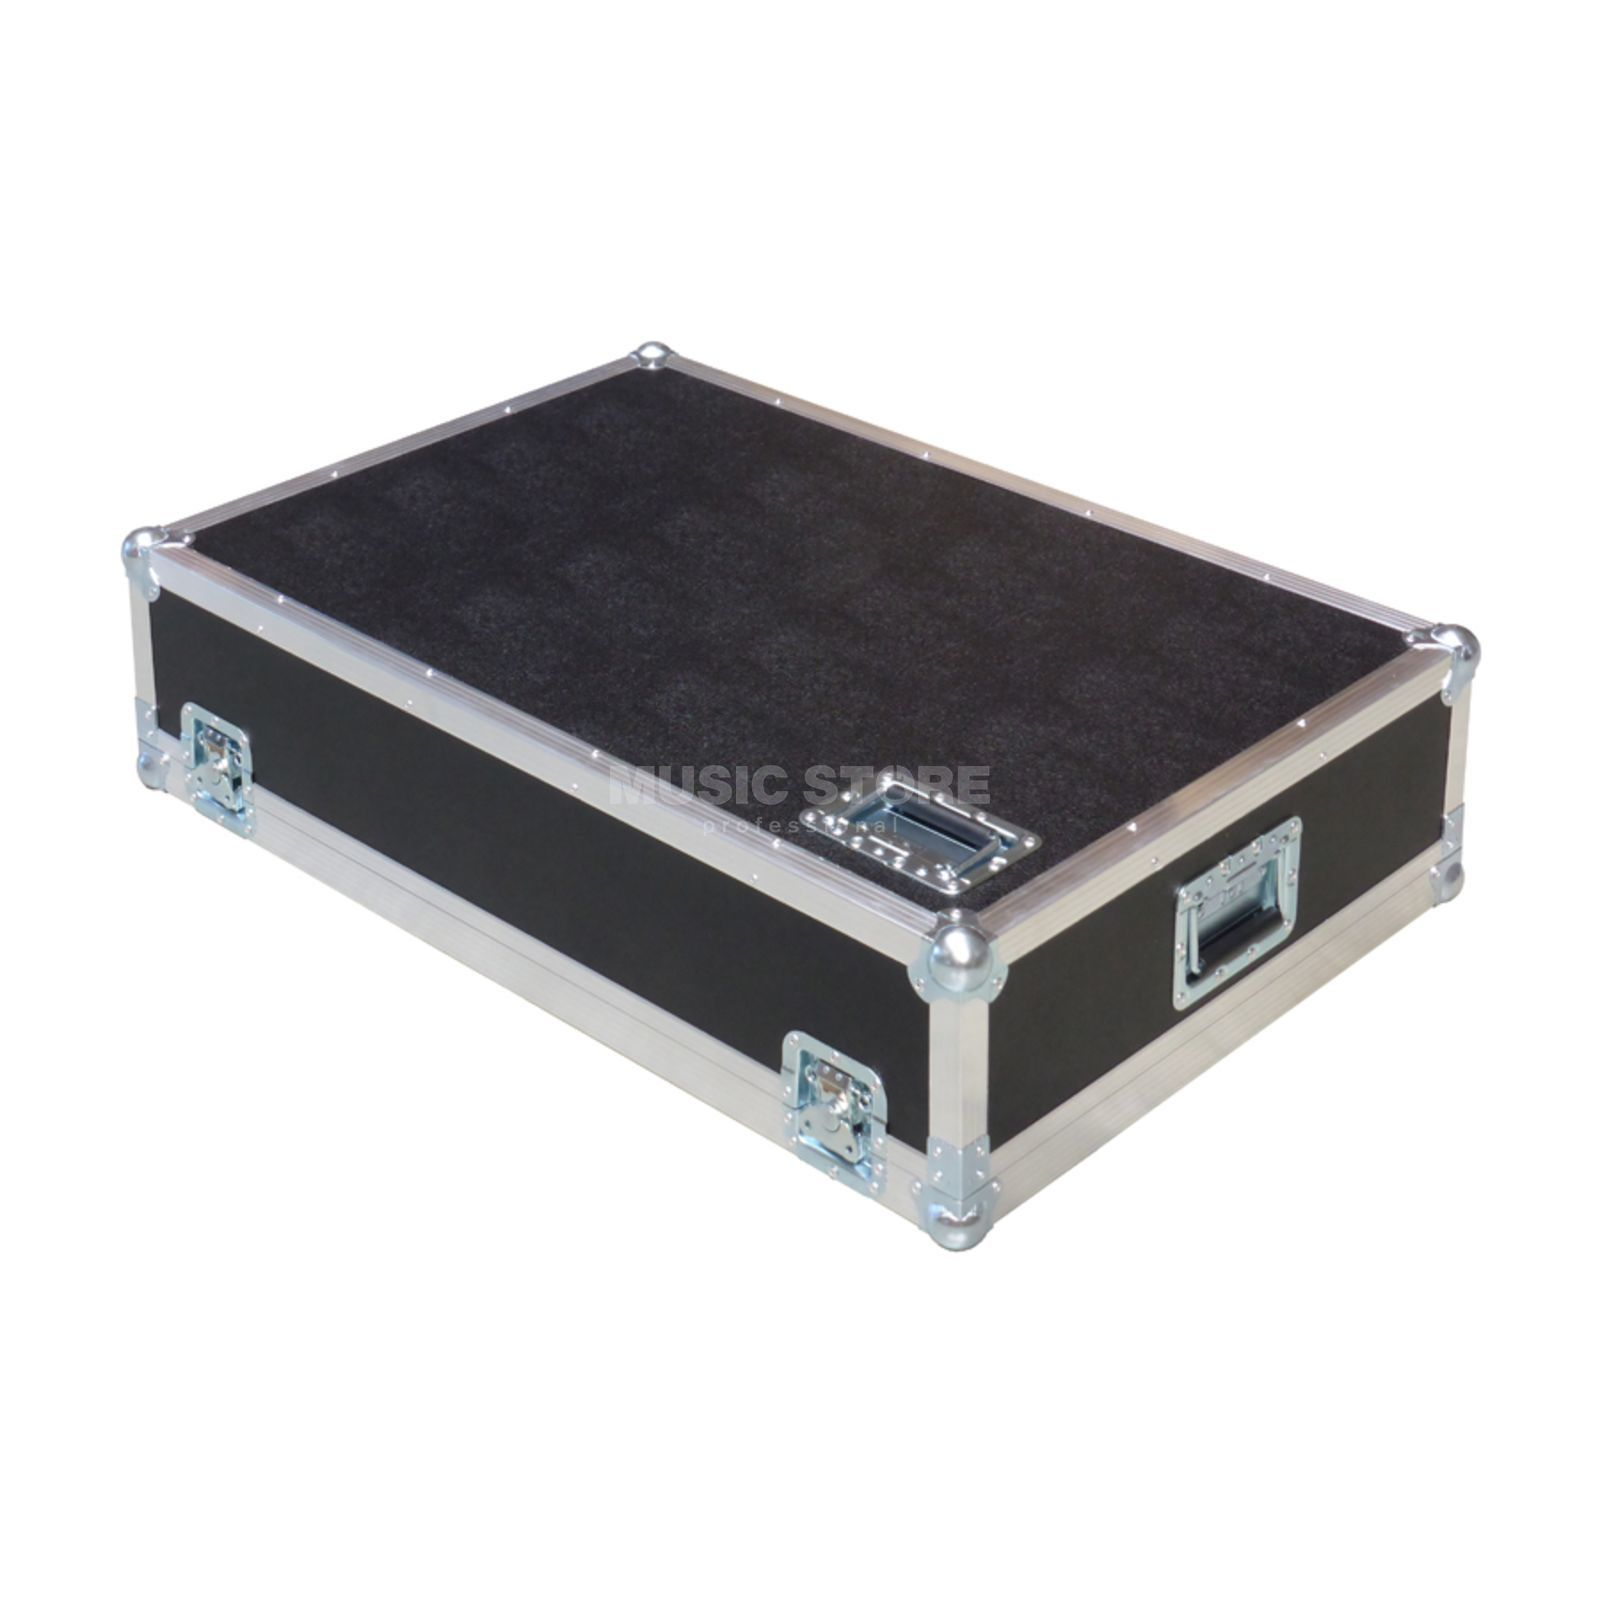 MUSIC STORE Case Midas M32R Eco Line, Kabelraum, braun Imagen del producto